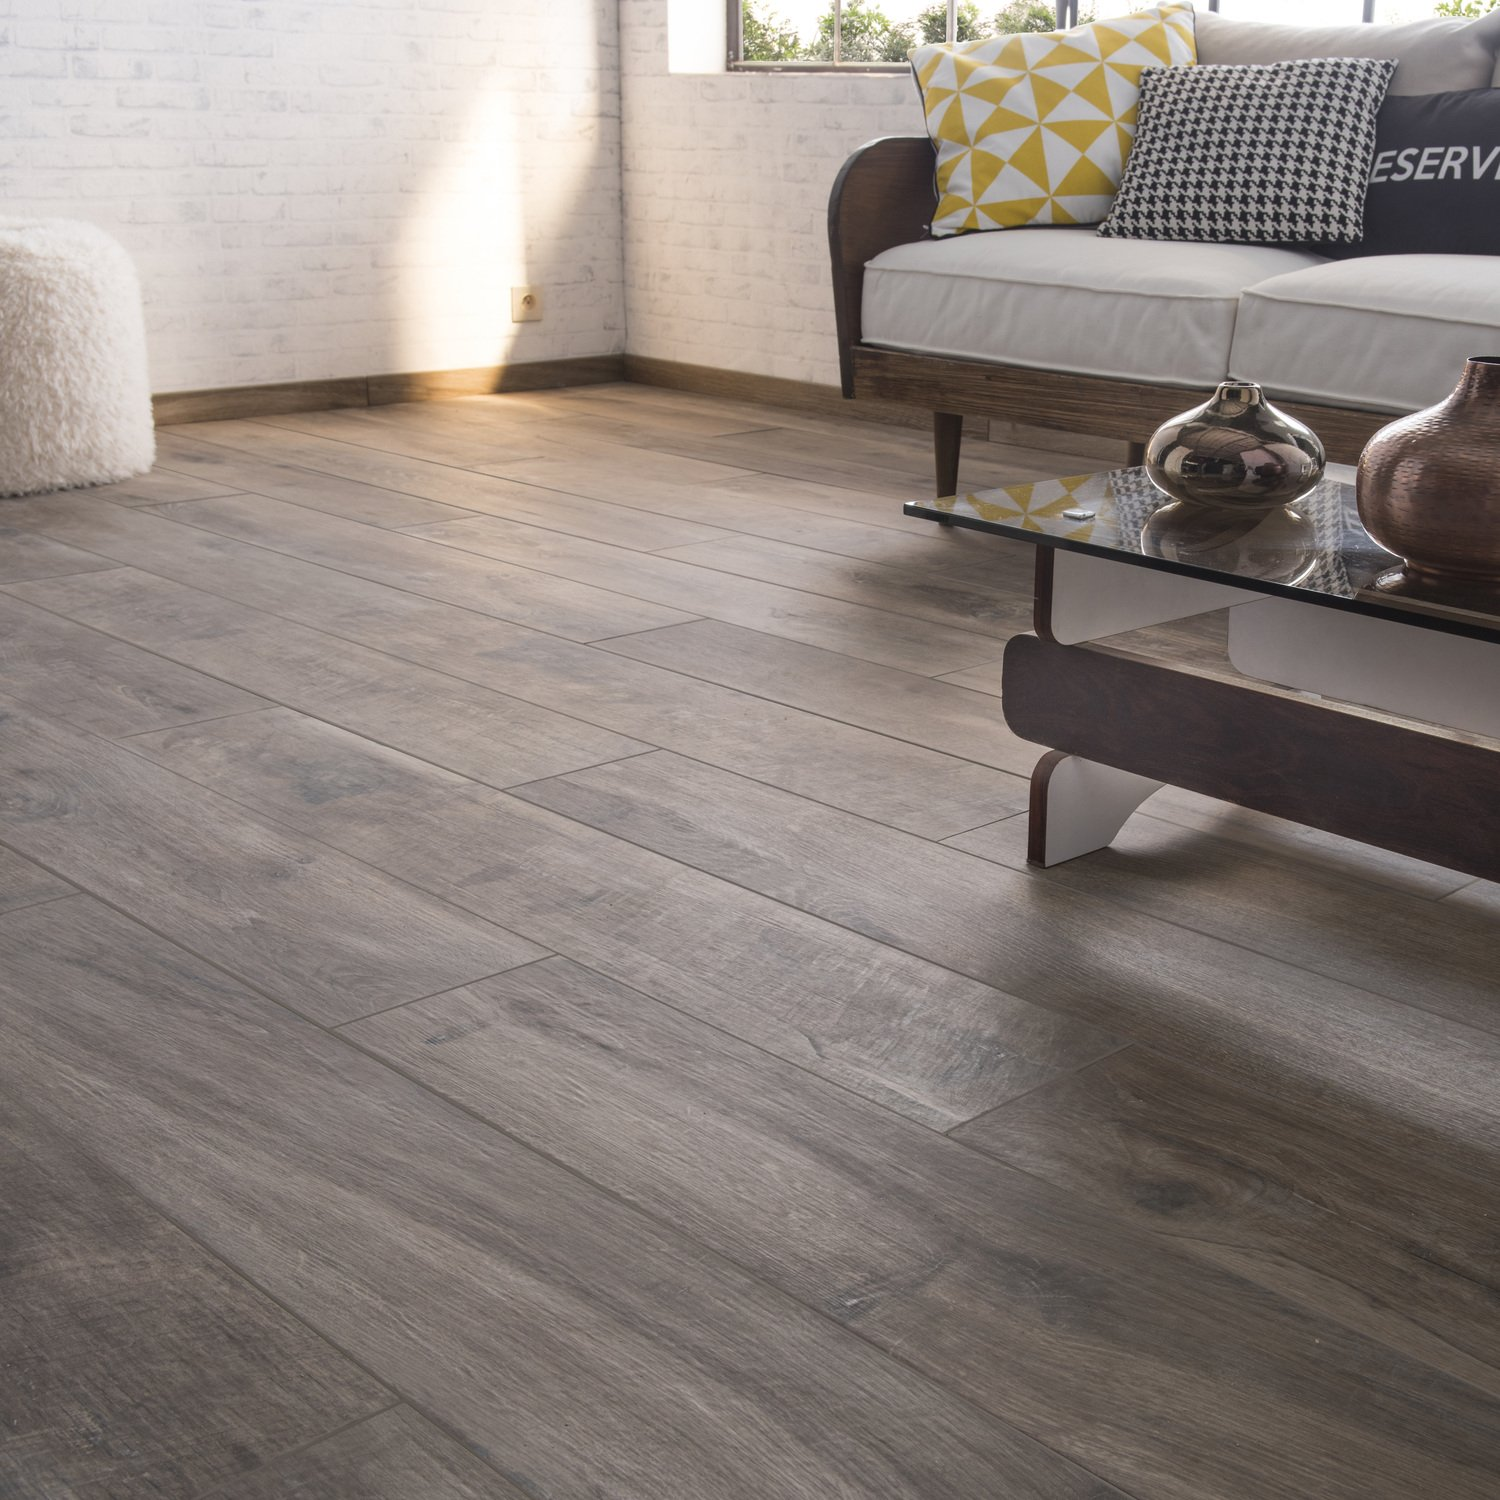 100 Incroyable Suggestions Carrelage Ou Parquet Dans Salon